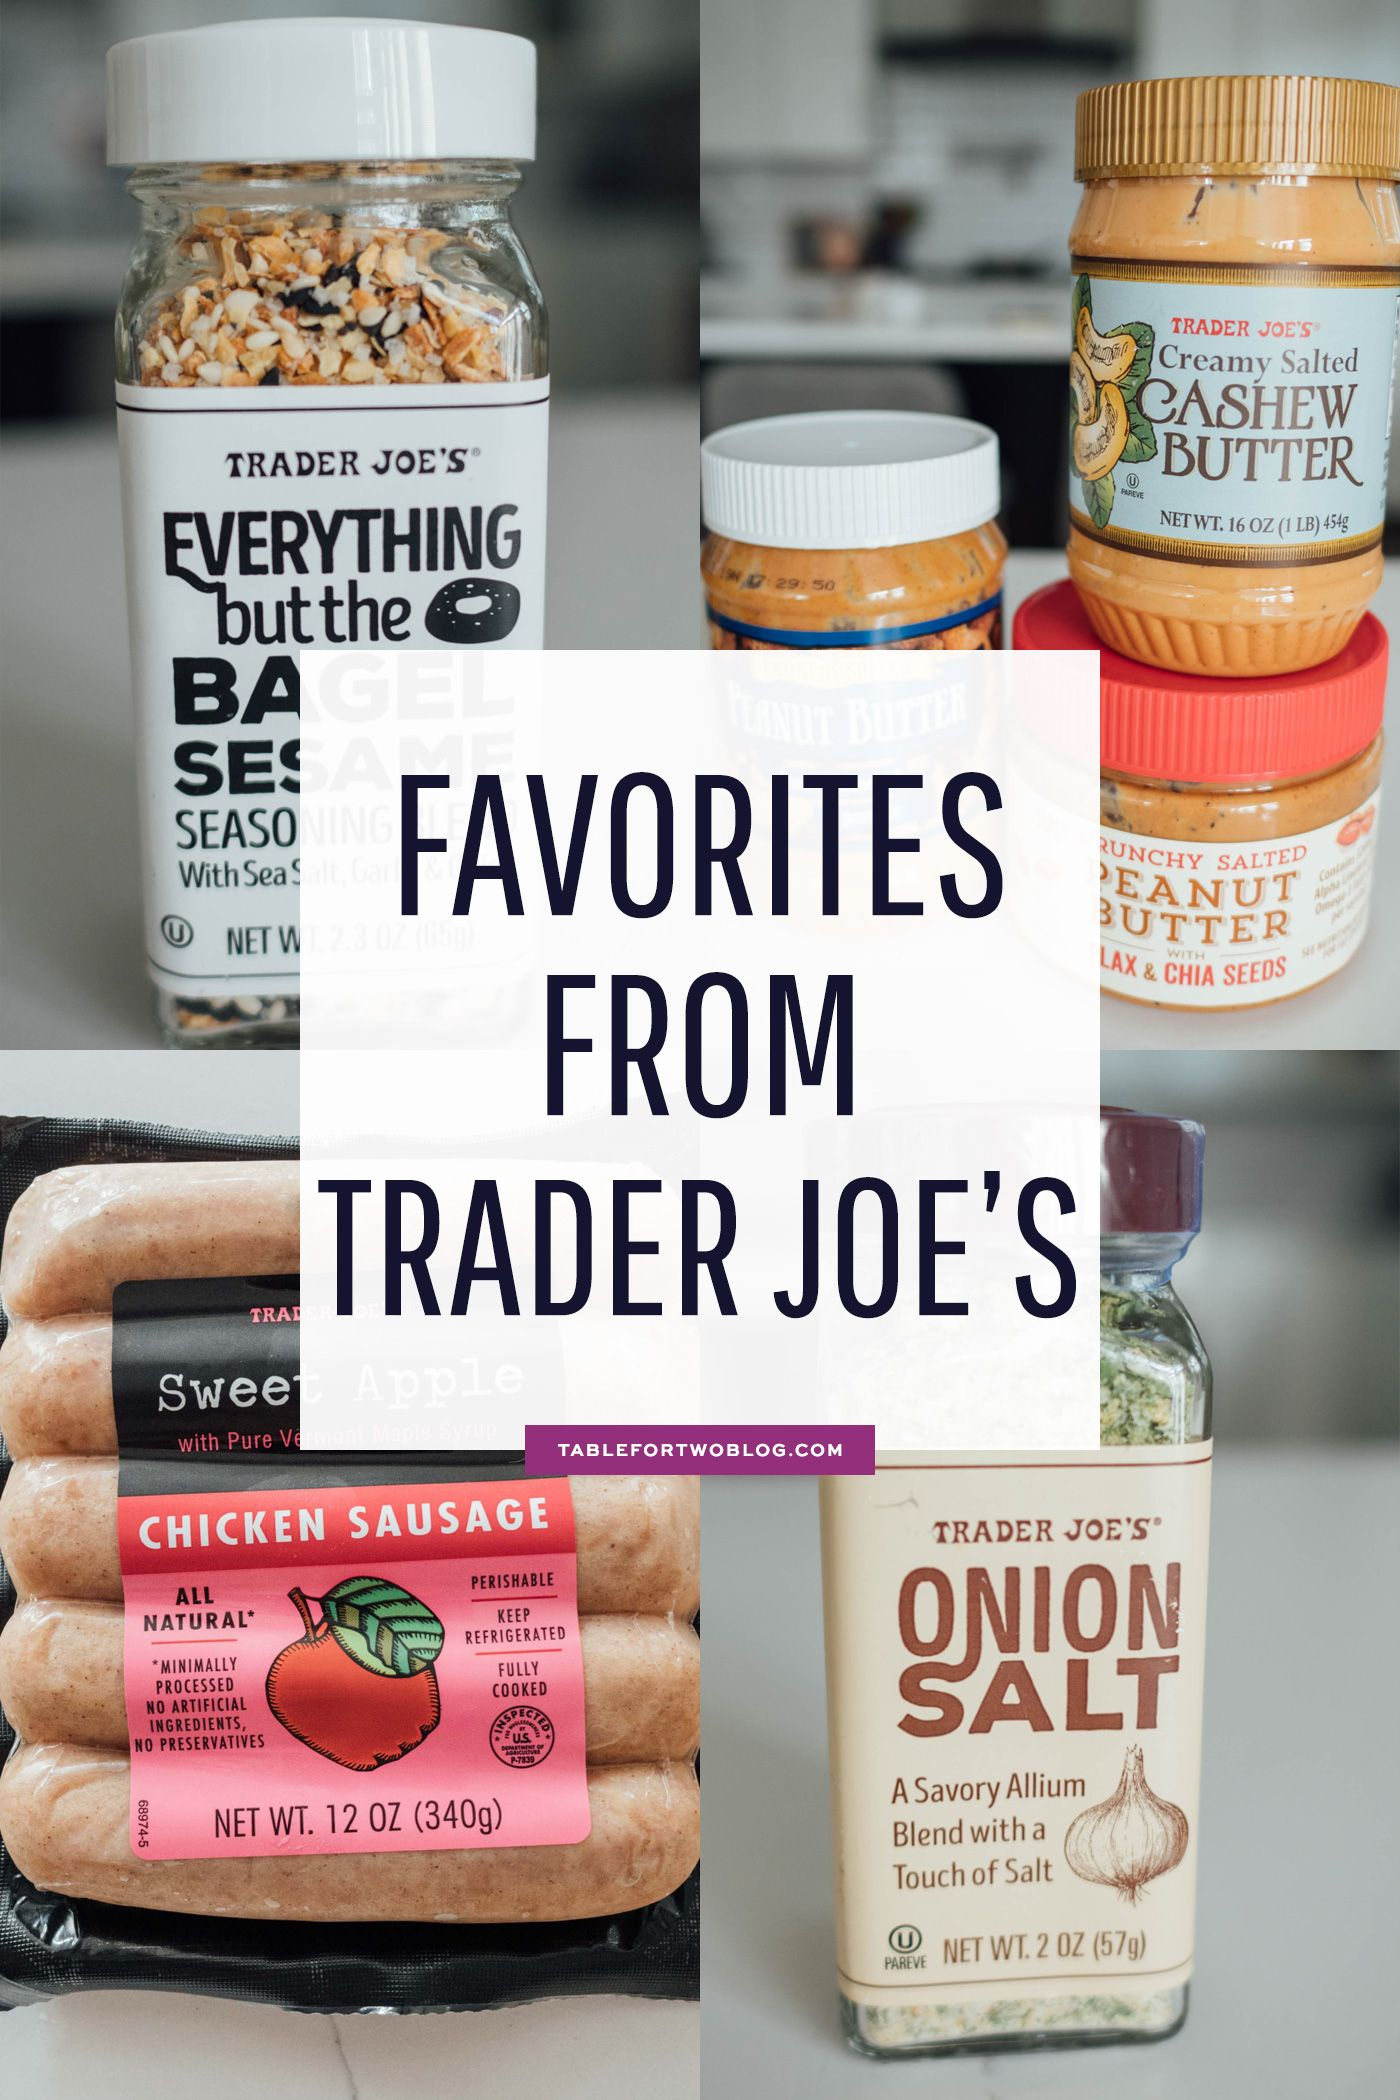 All my favorite items from trader joes compiled into one